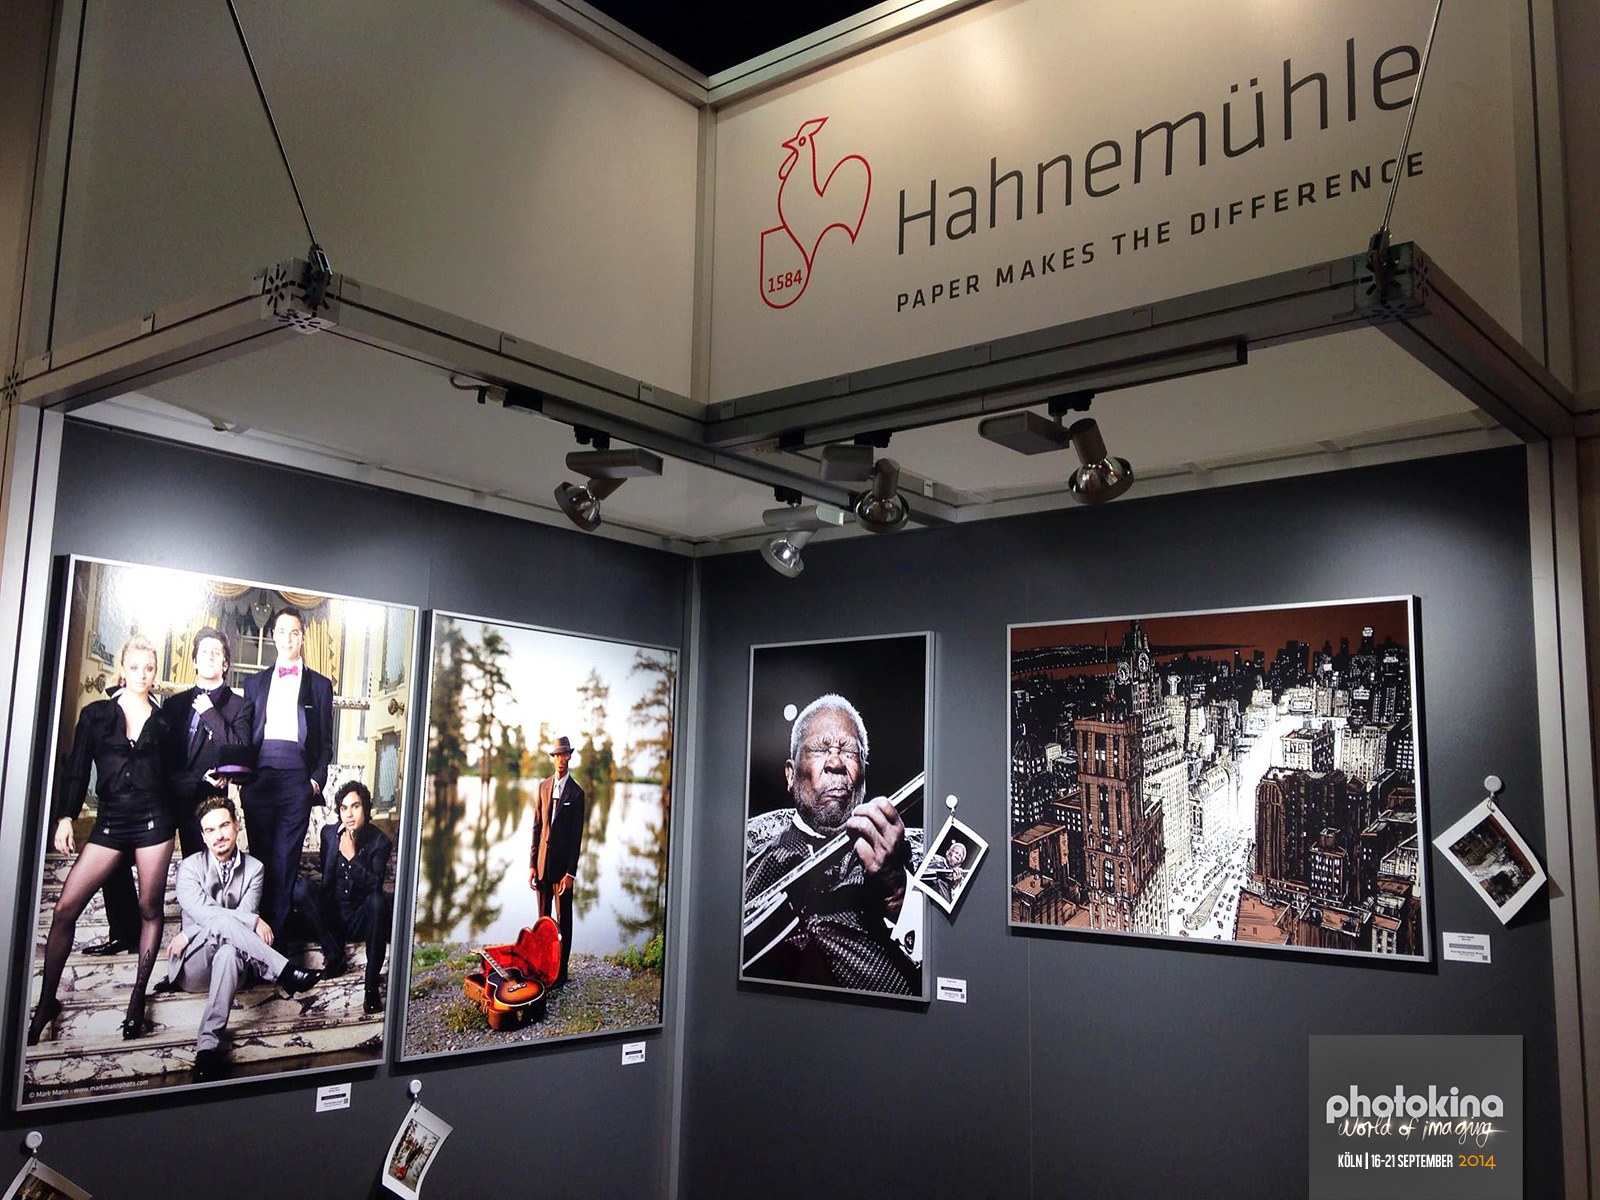 BB_King_photokina_2014_Jerome_Brunet